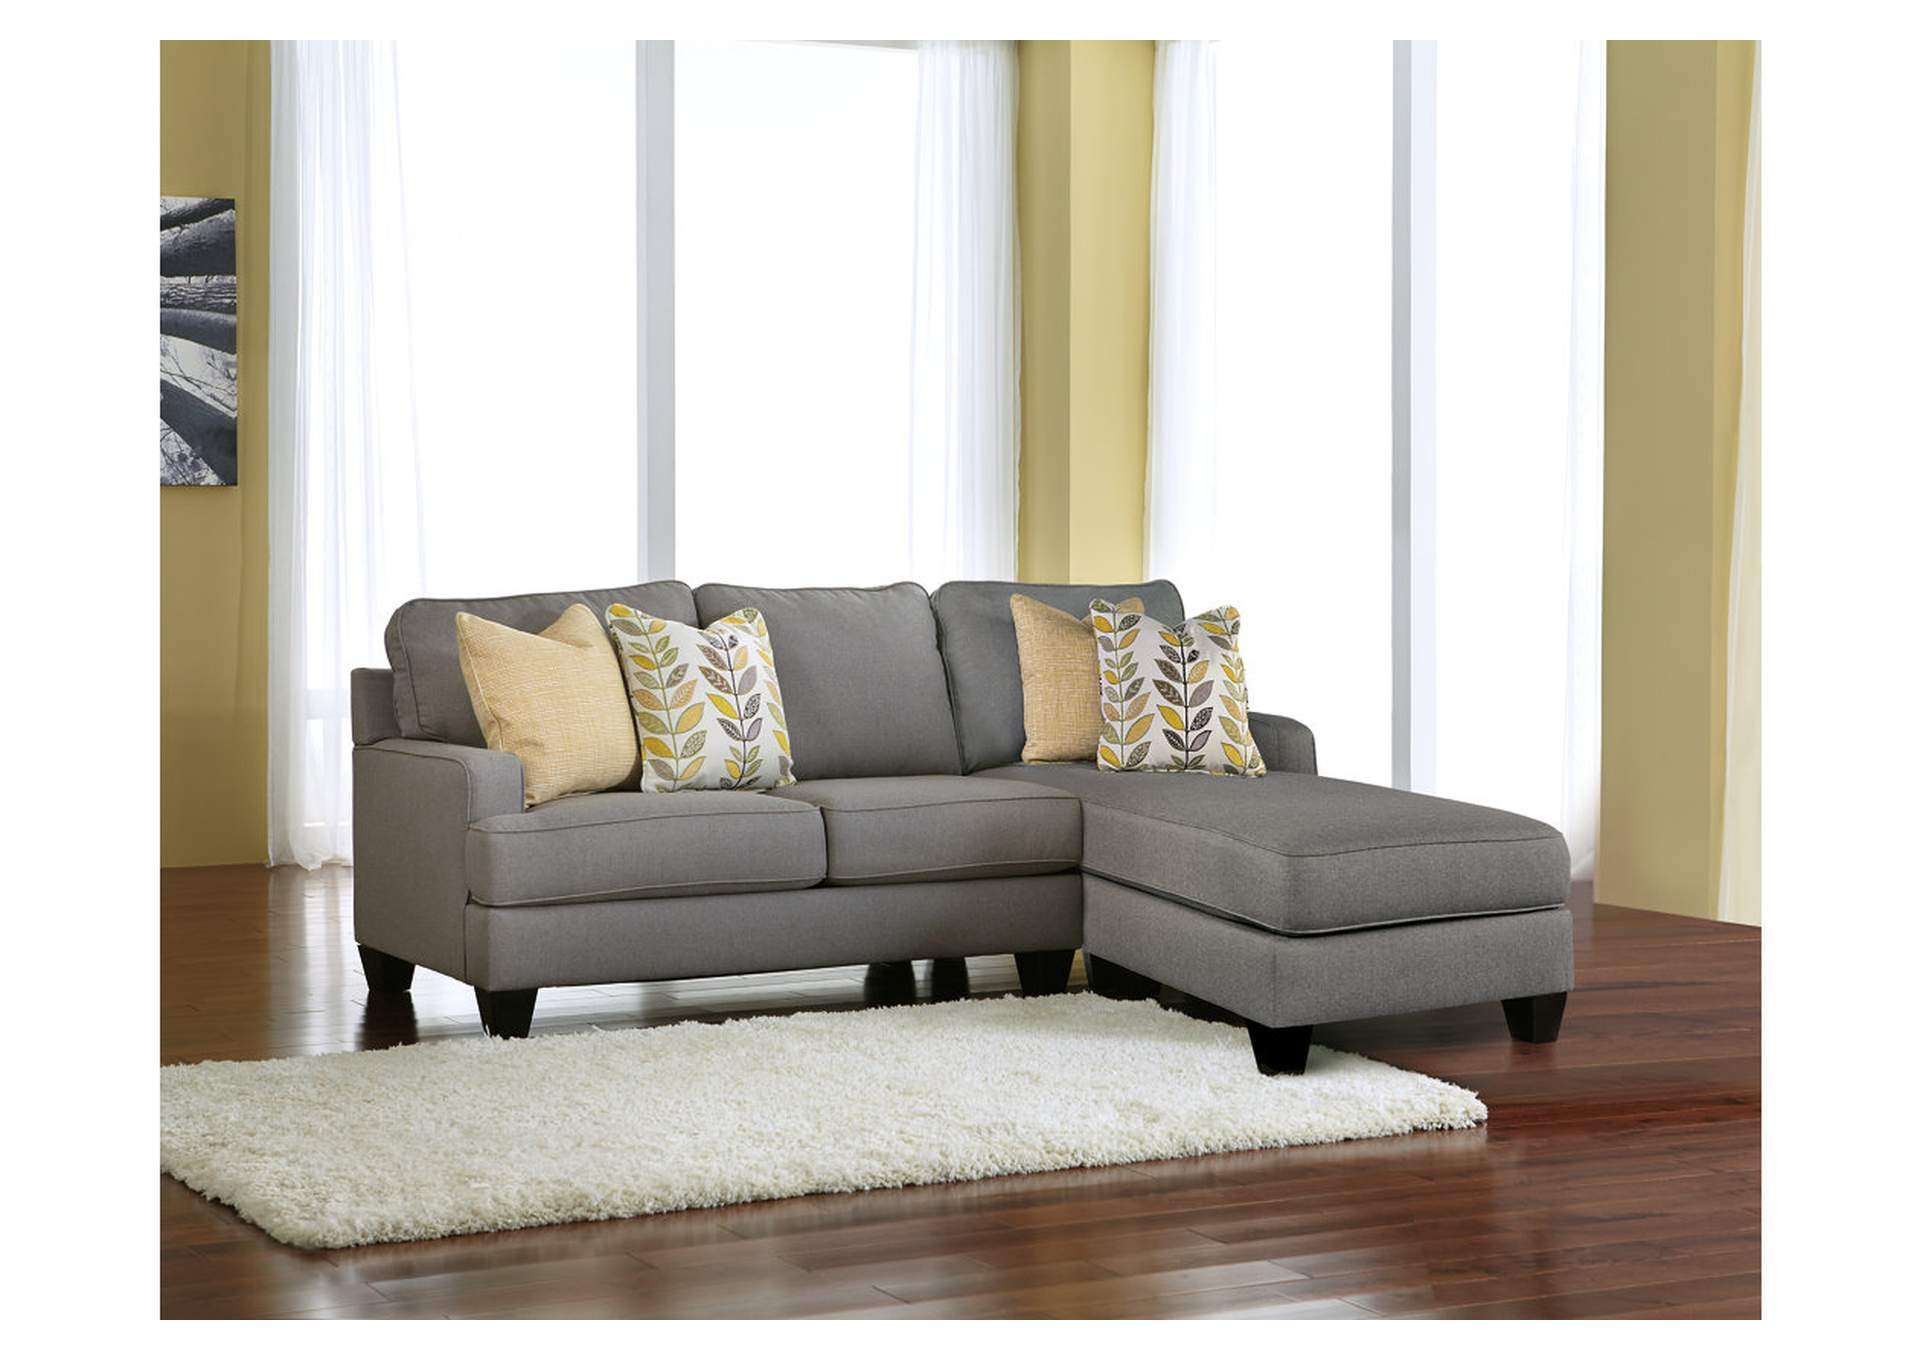 Alabama furniture market chamberly alloy chaise end sectional for Ashley sectional with chaise